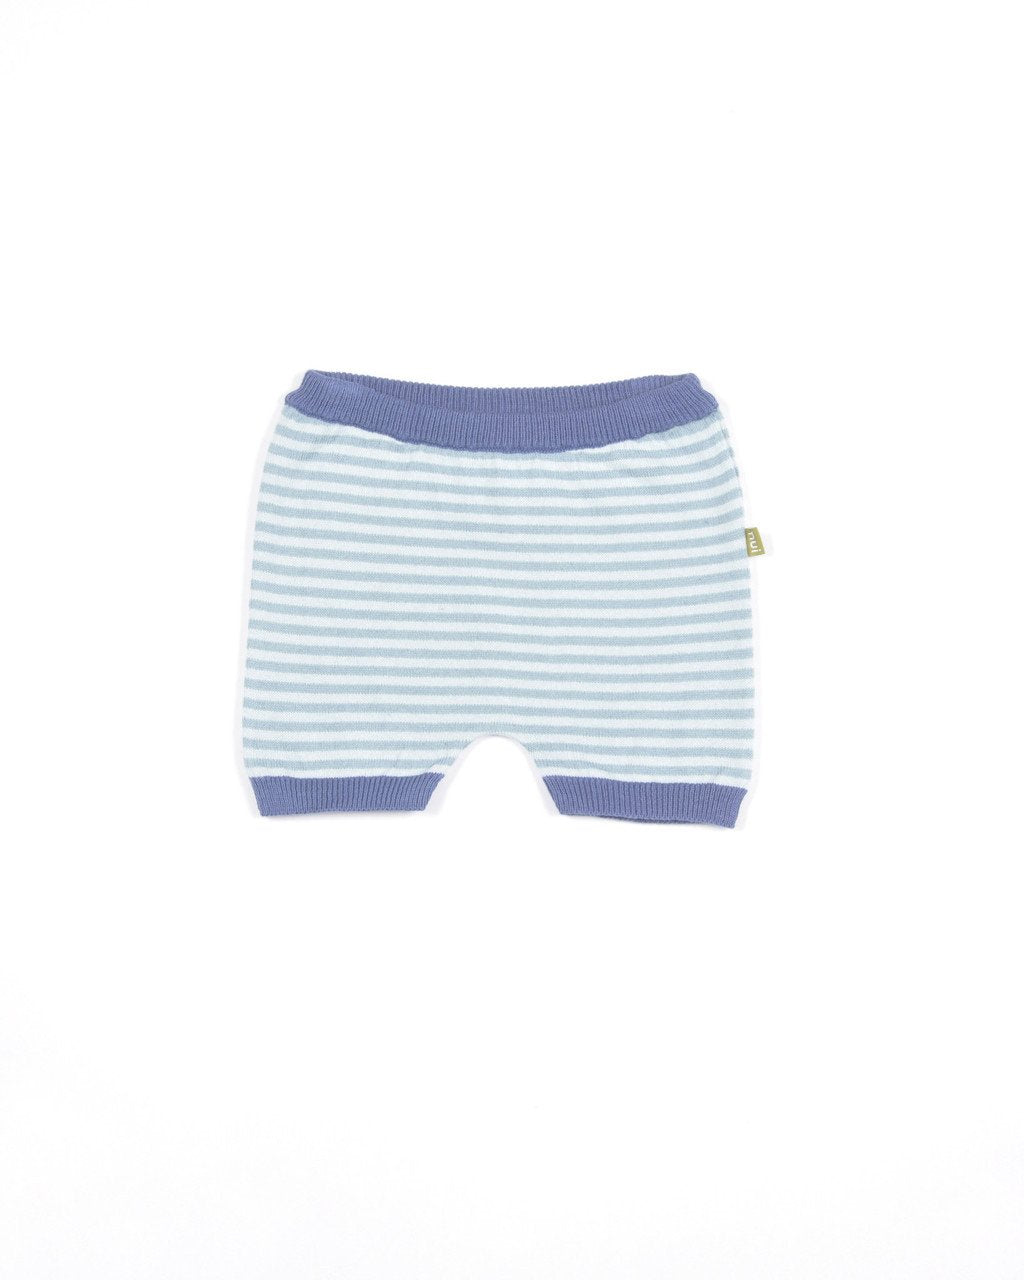 Blue Stripe Knit Shorts - Crunch Natural Parenting is where to buy